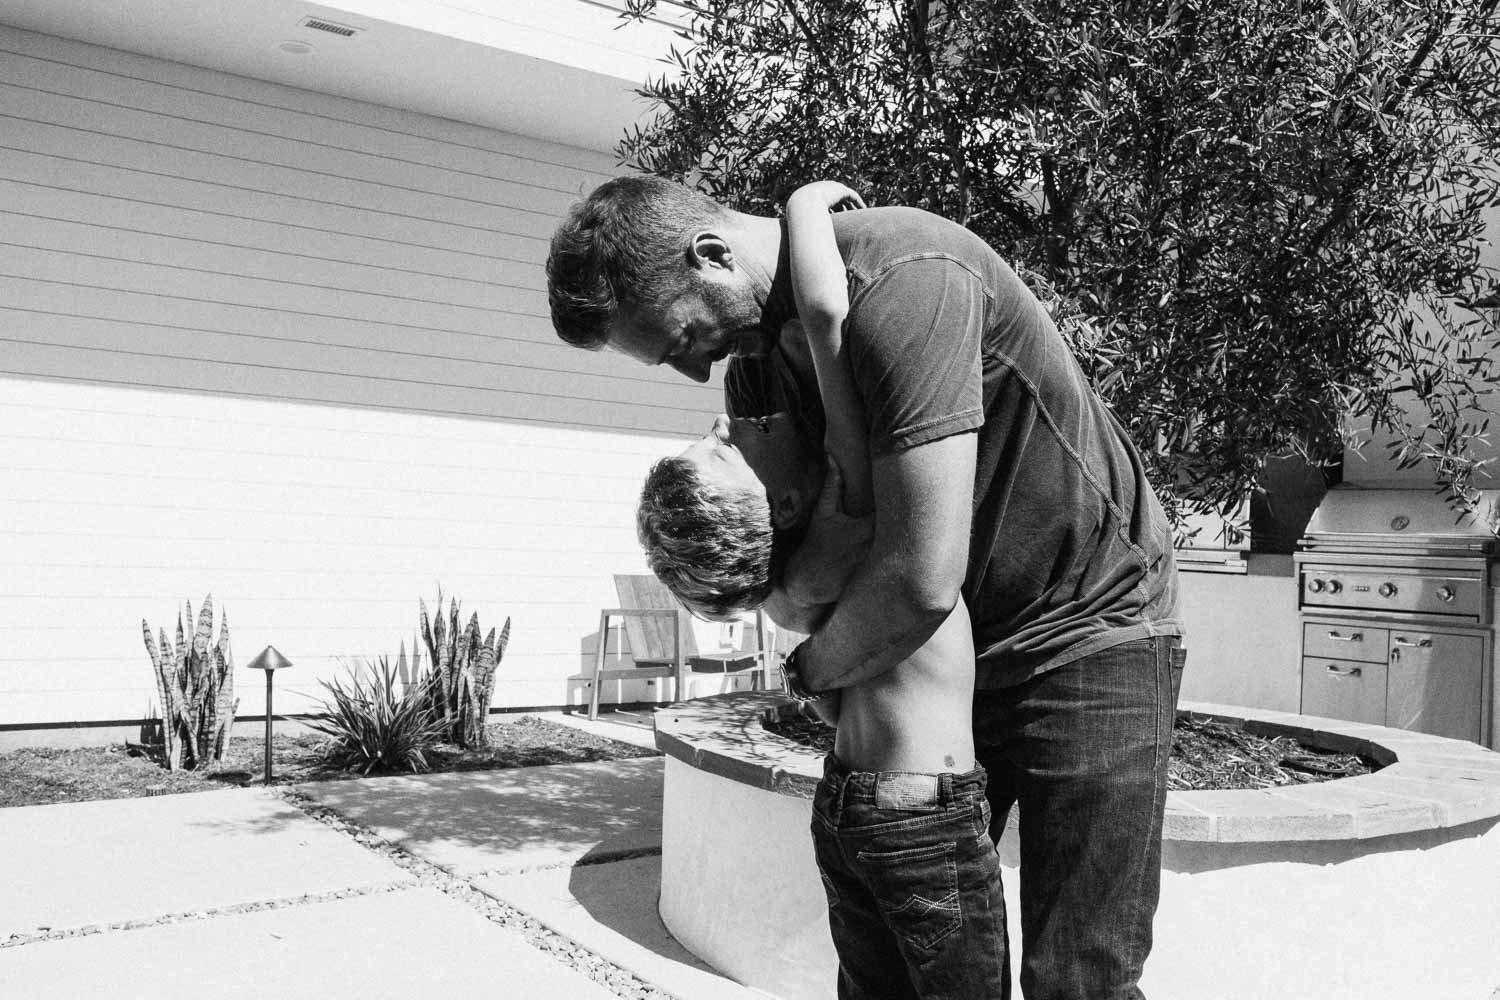 natural-and-artistic-black-and-white-photo-of-father-and-son-hugging-encinita-california